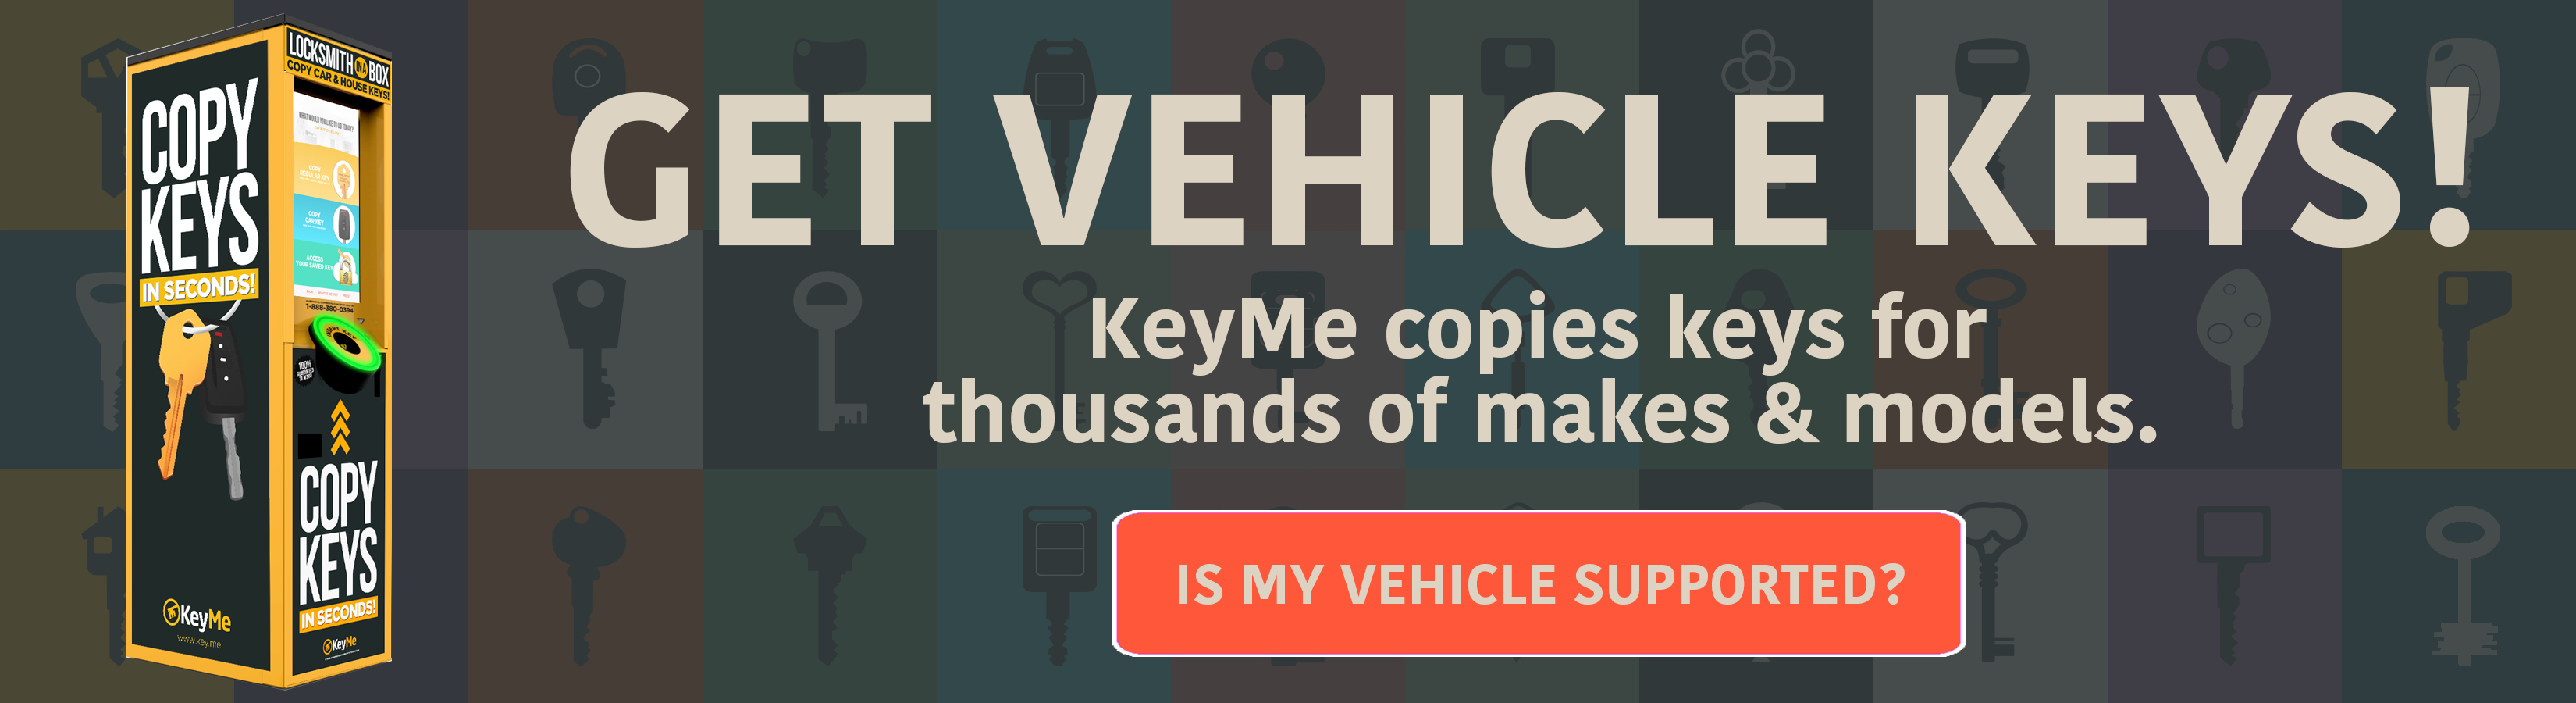 Get Vehicle Keys Call To Action